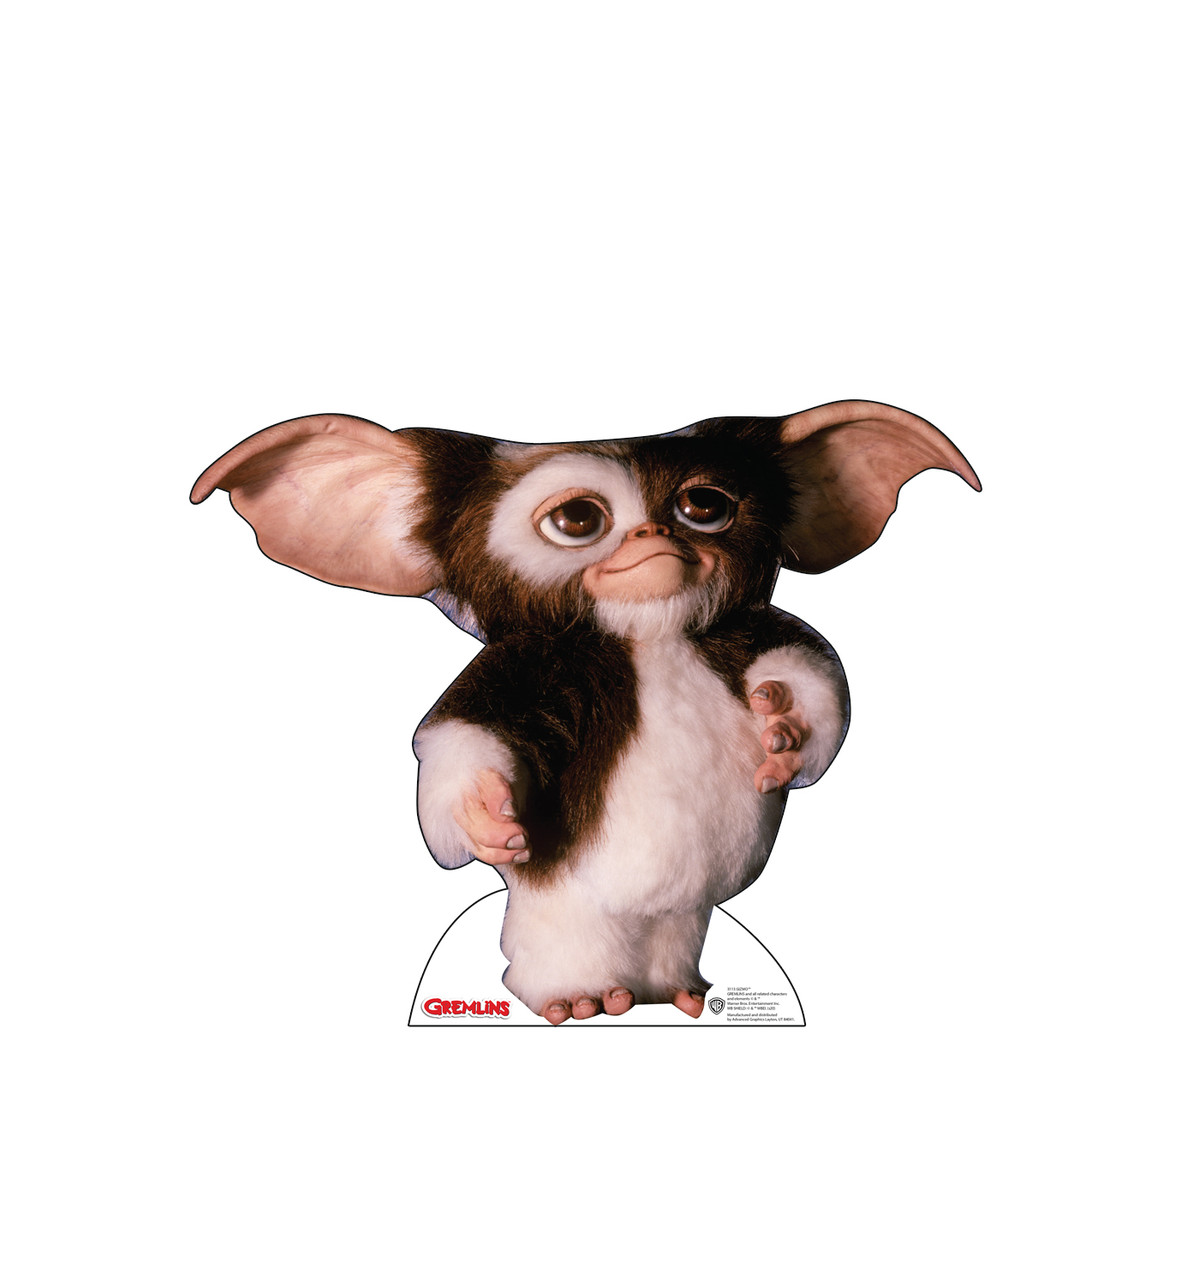 Life-size cardboard standee of GizmoTM from the movie Gremlins.